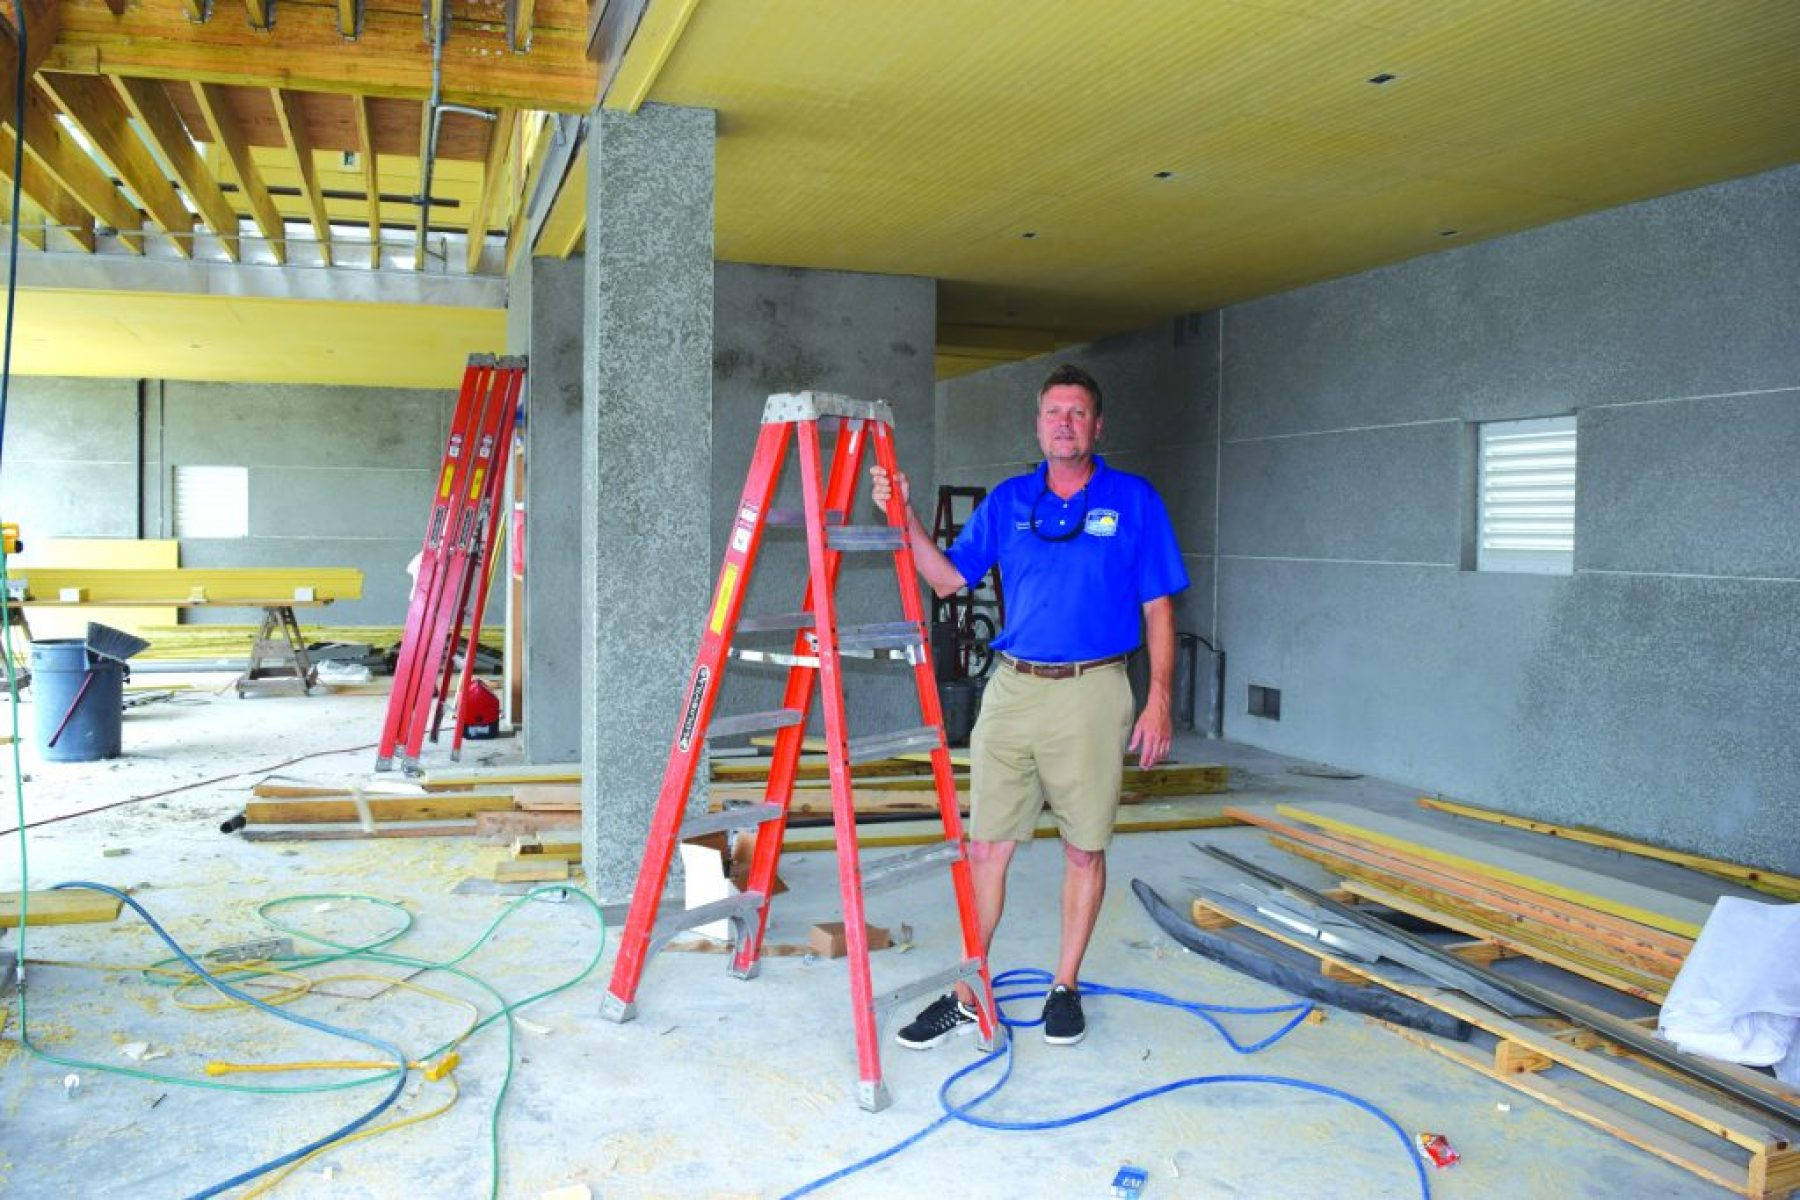 Gulfport Marina Harbormaster Denis Frain poses on the first floor of the new facility, which will serve as a waiting area for charter-boat patrons.